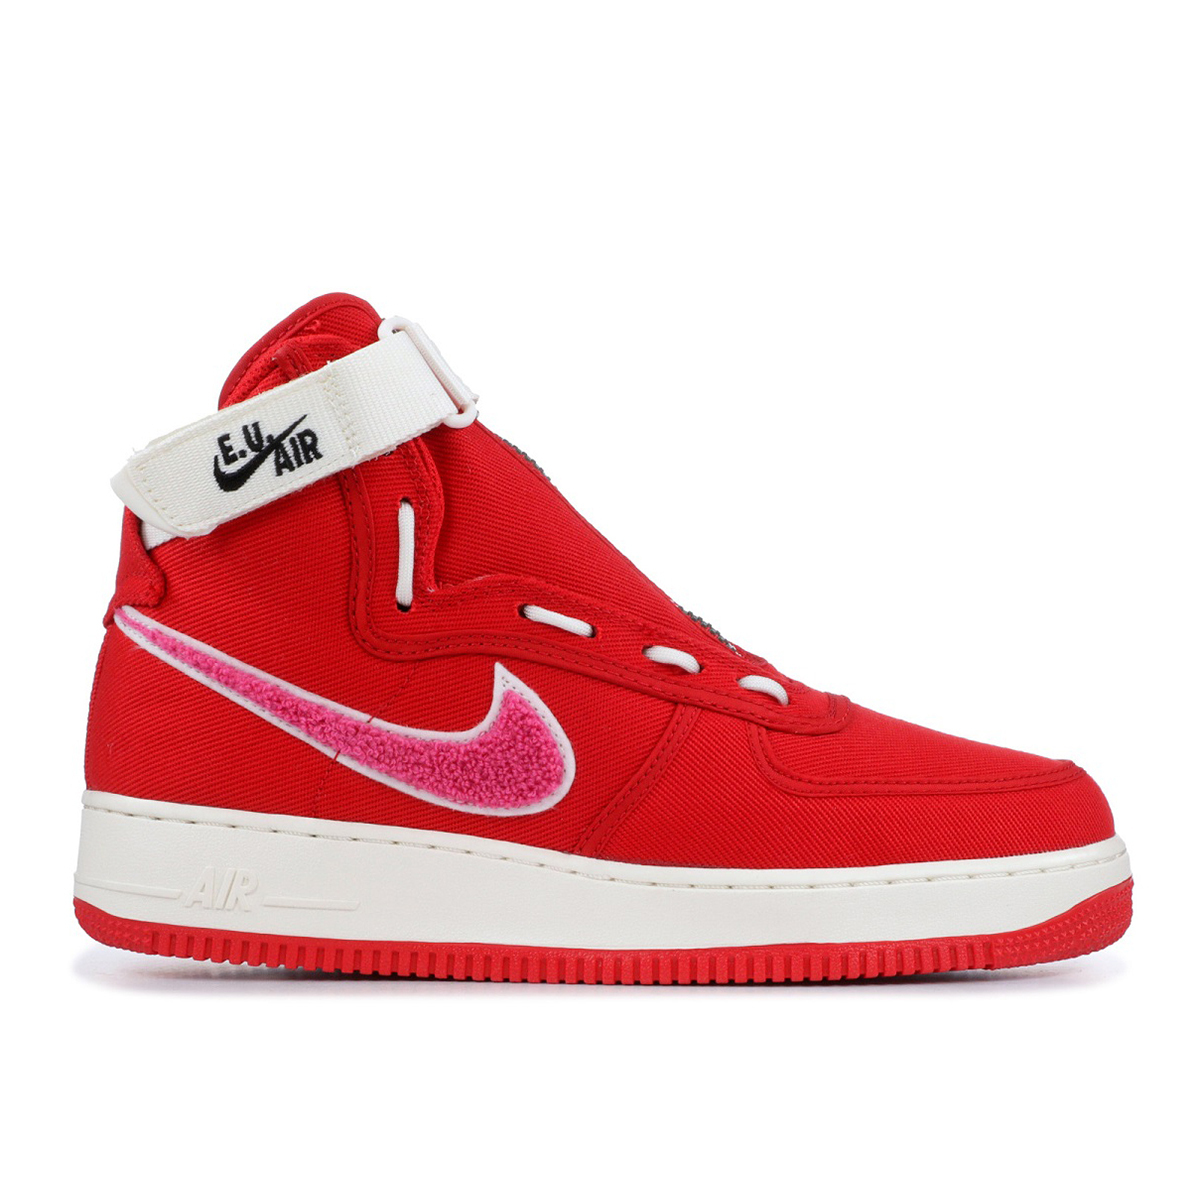 promo code 13cd1 1c9c9 Nike Air Force 1 High x Emotionally and 50 similar items. 135951 01